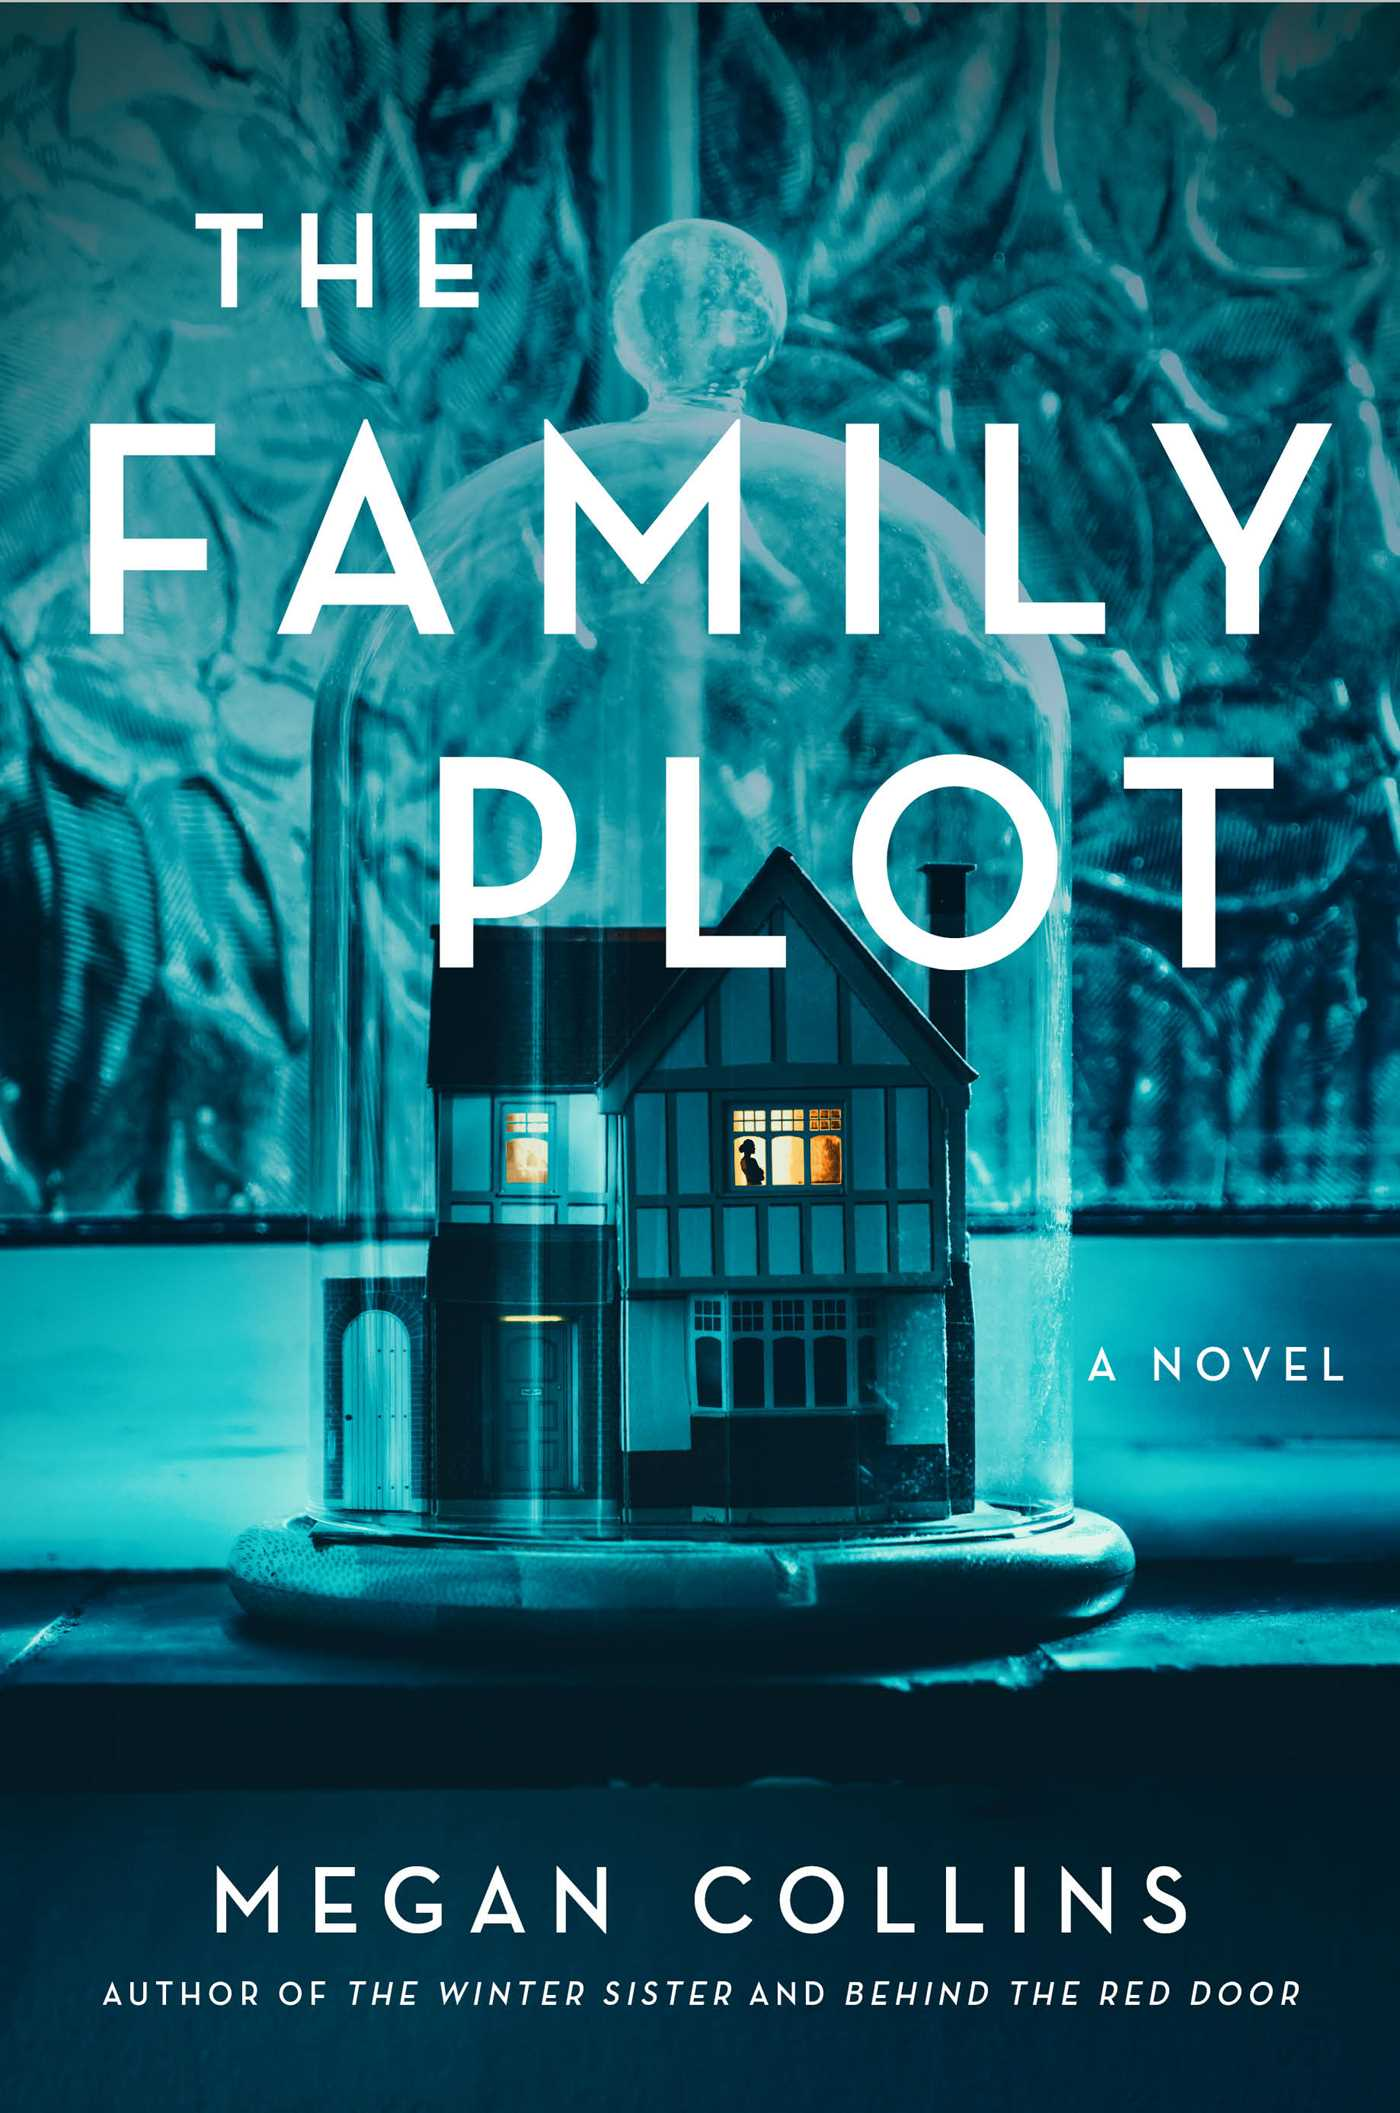 When Does The Family Plot Release? Megan Collins 2021 New Release